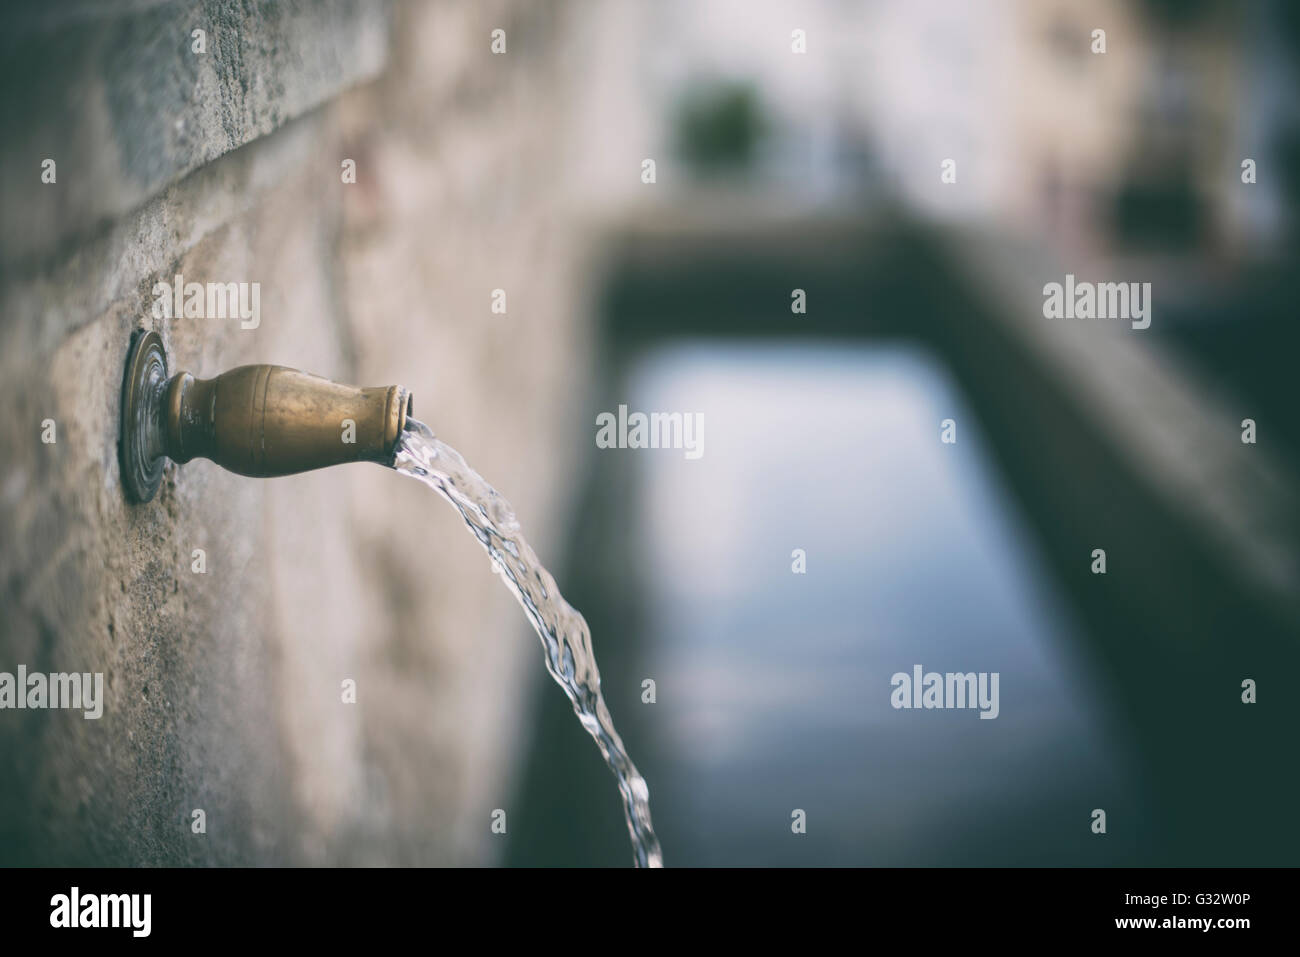 Water Coming Out Tap Water Stock Photos & Water Coming Out Tap Water ...